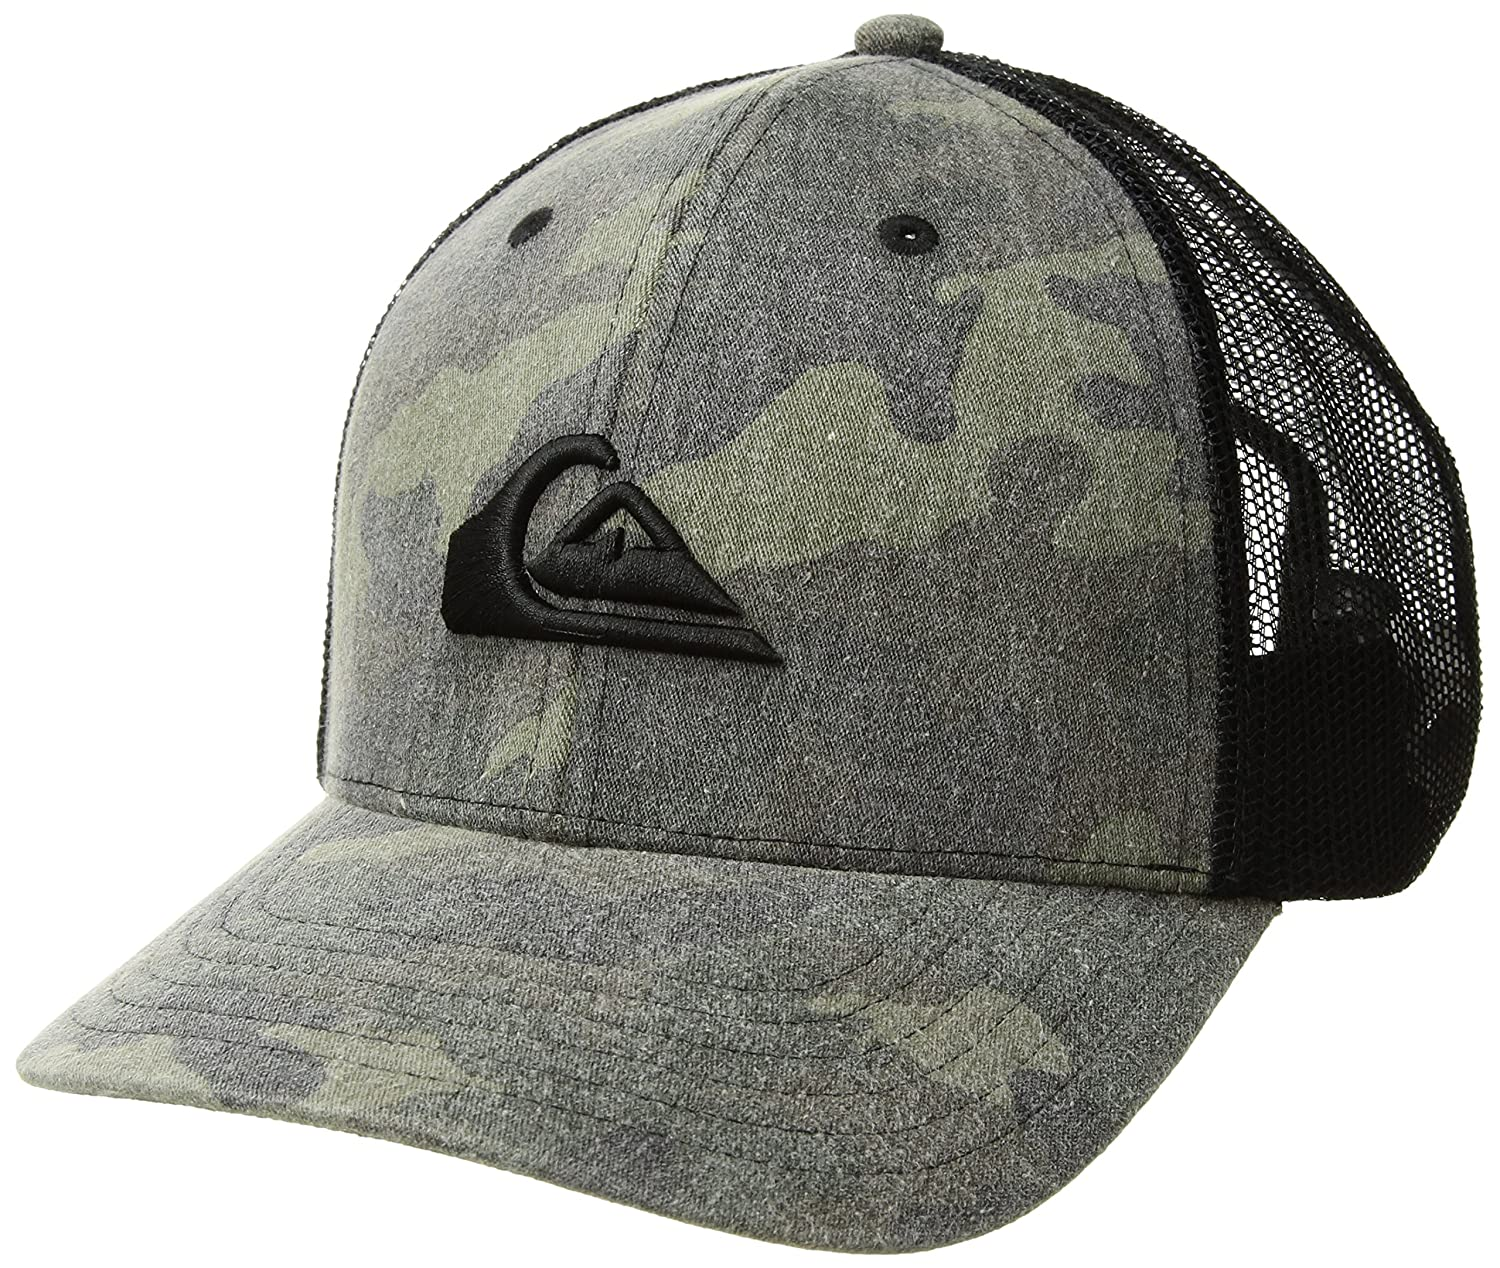 cc6faac5feb Amazon.com  Quiksilver Men s Grounder Trucker HAT